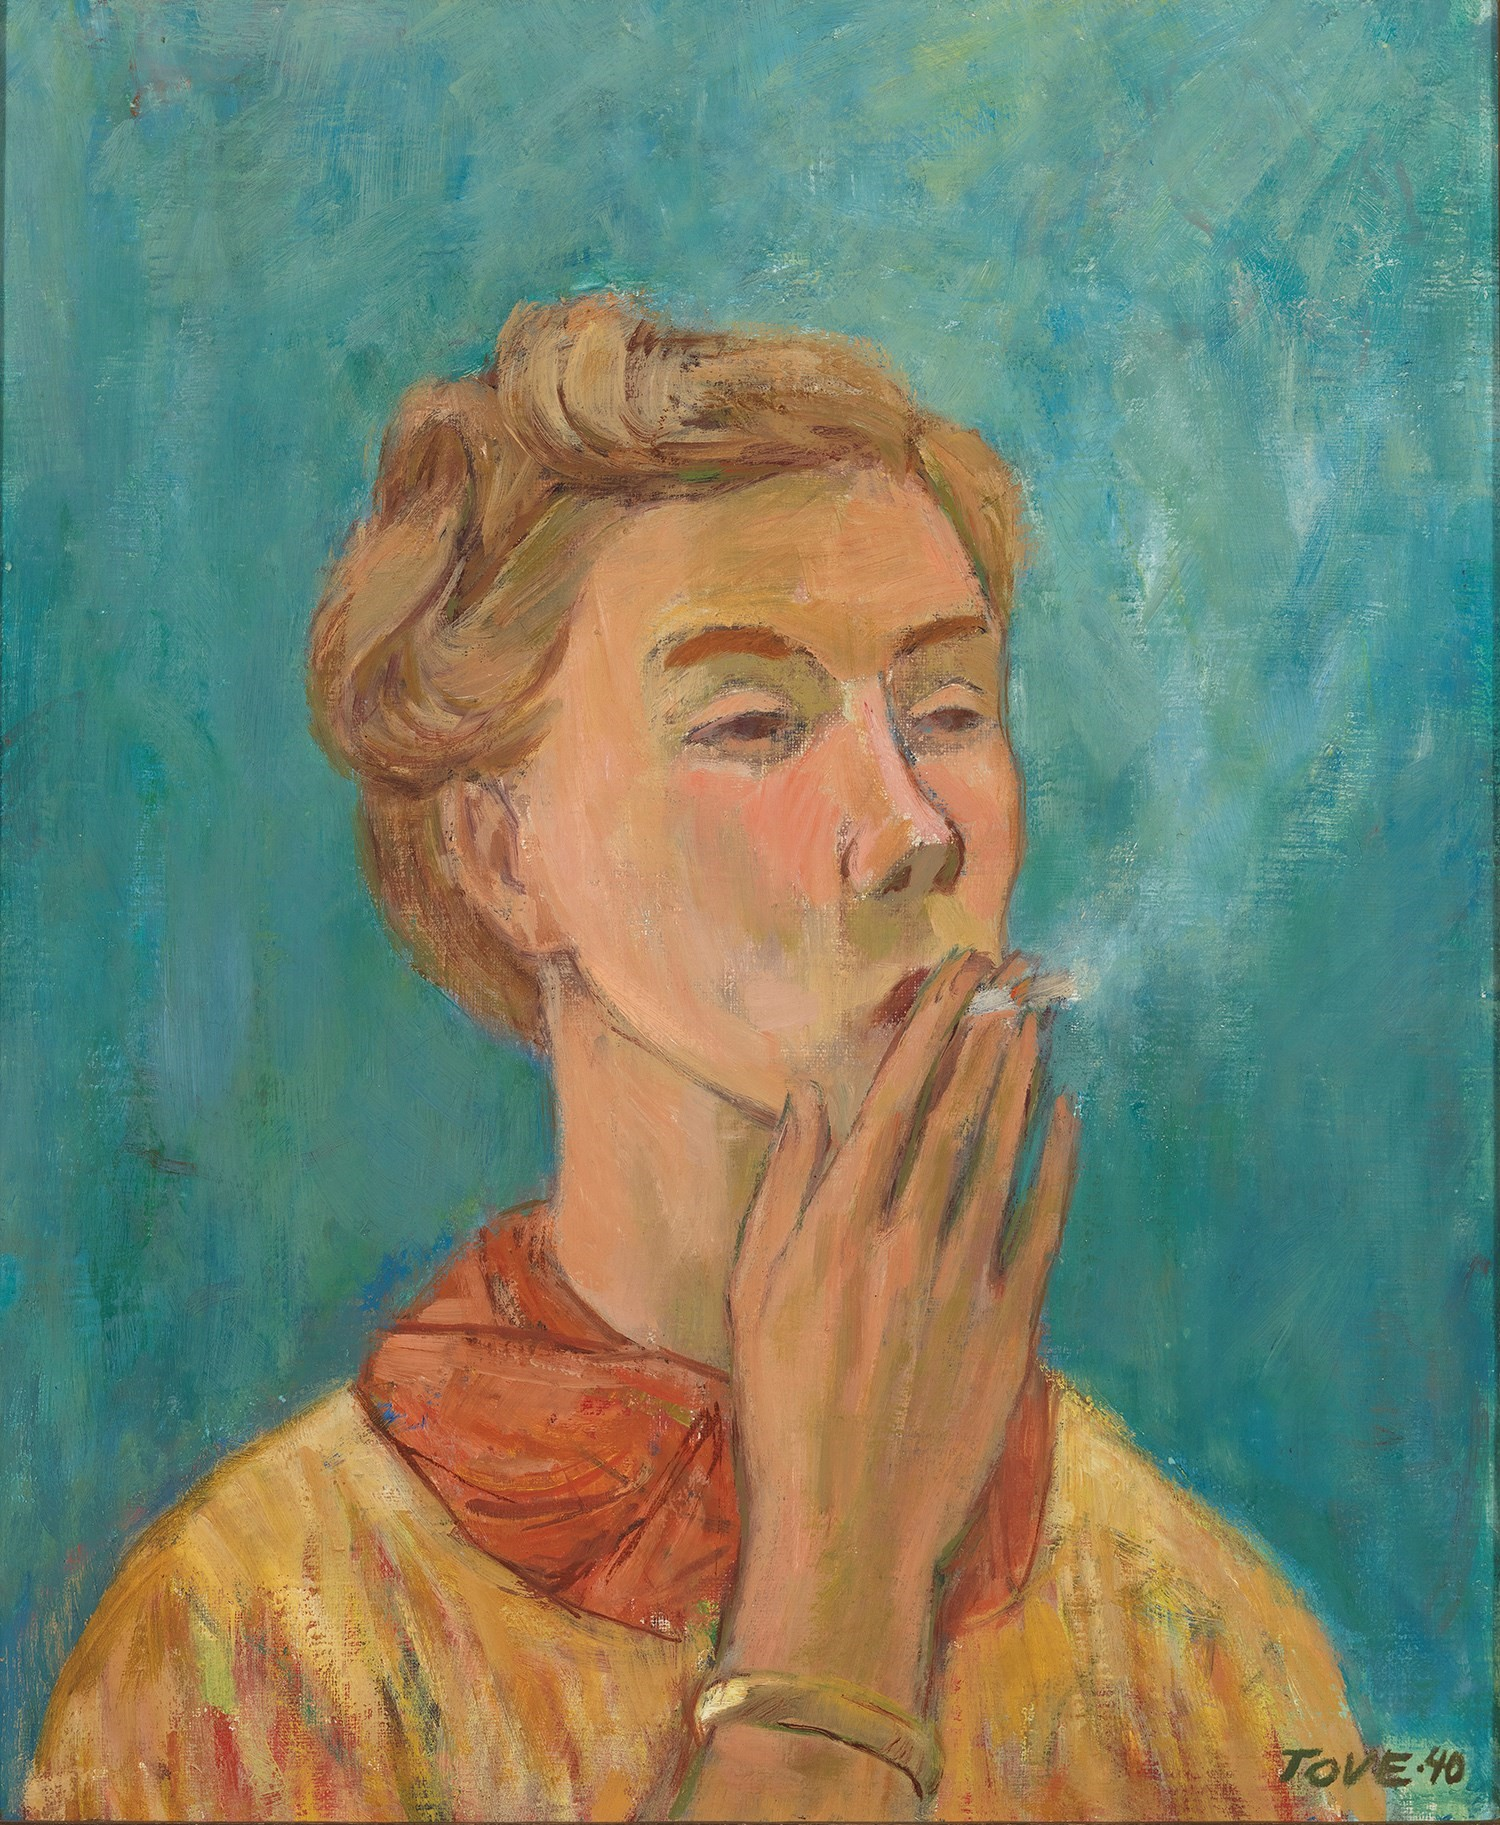 The Smoking Girl